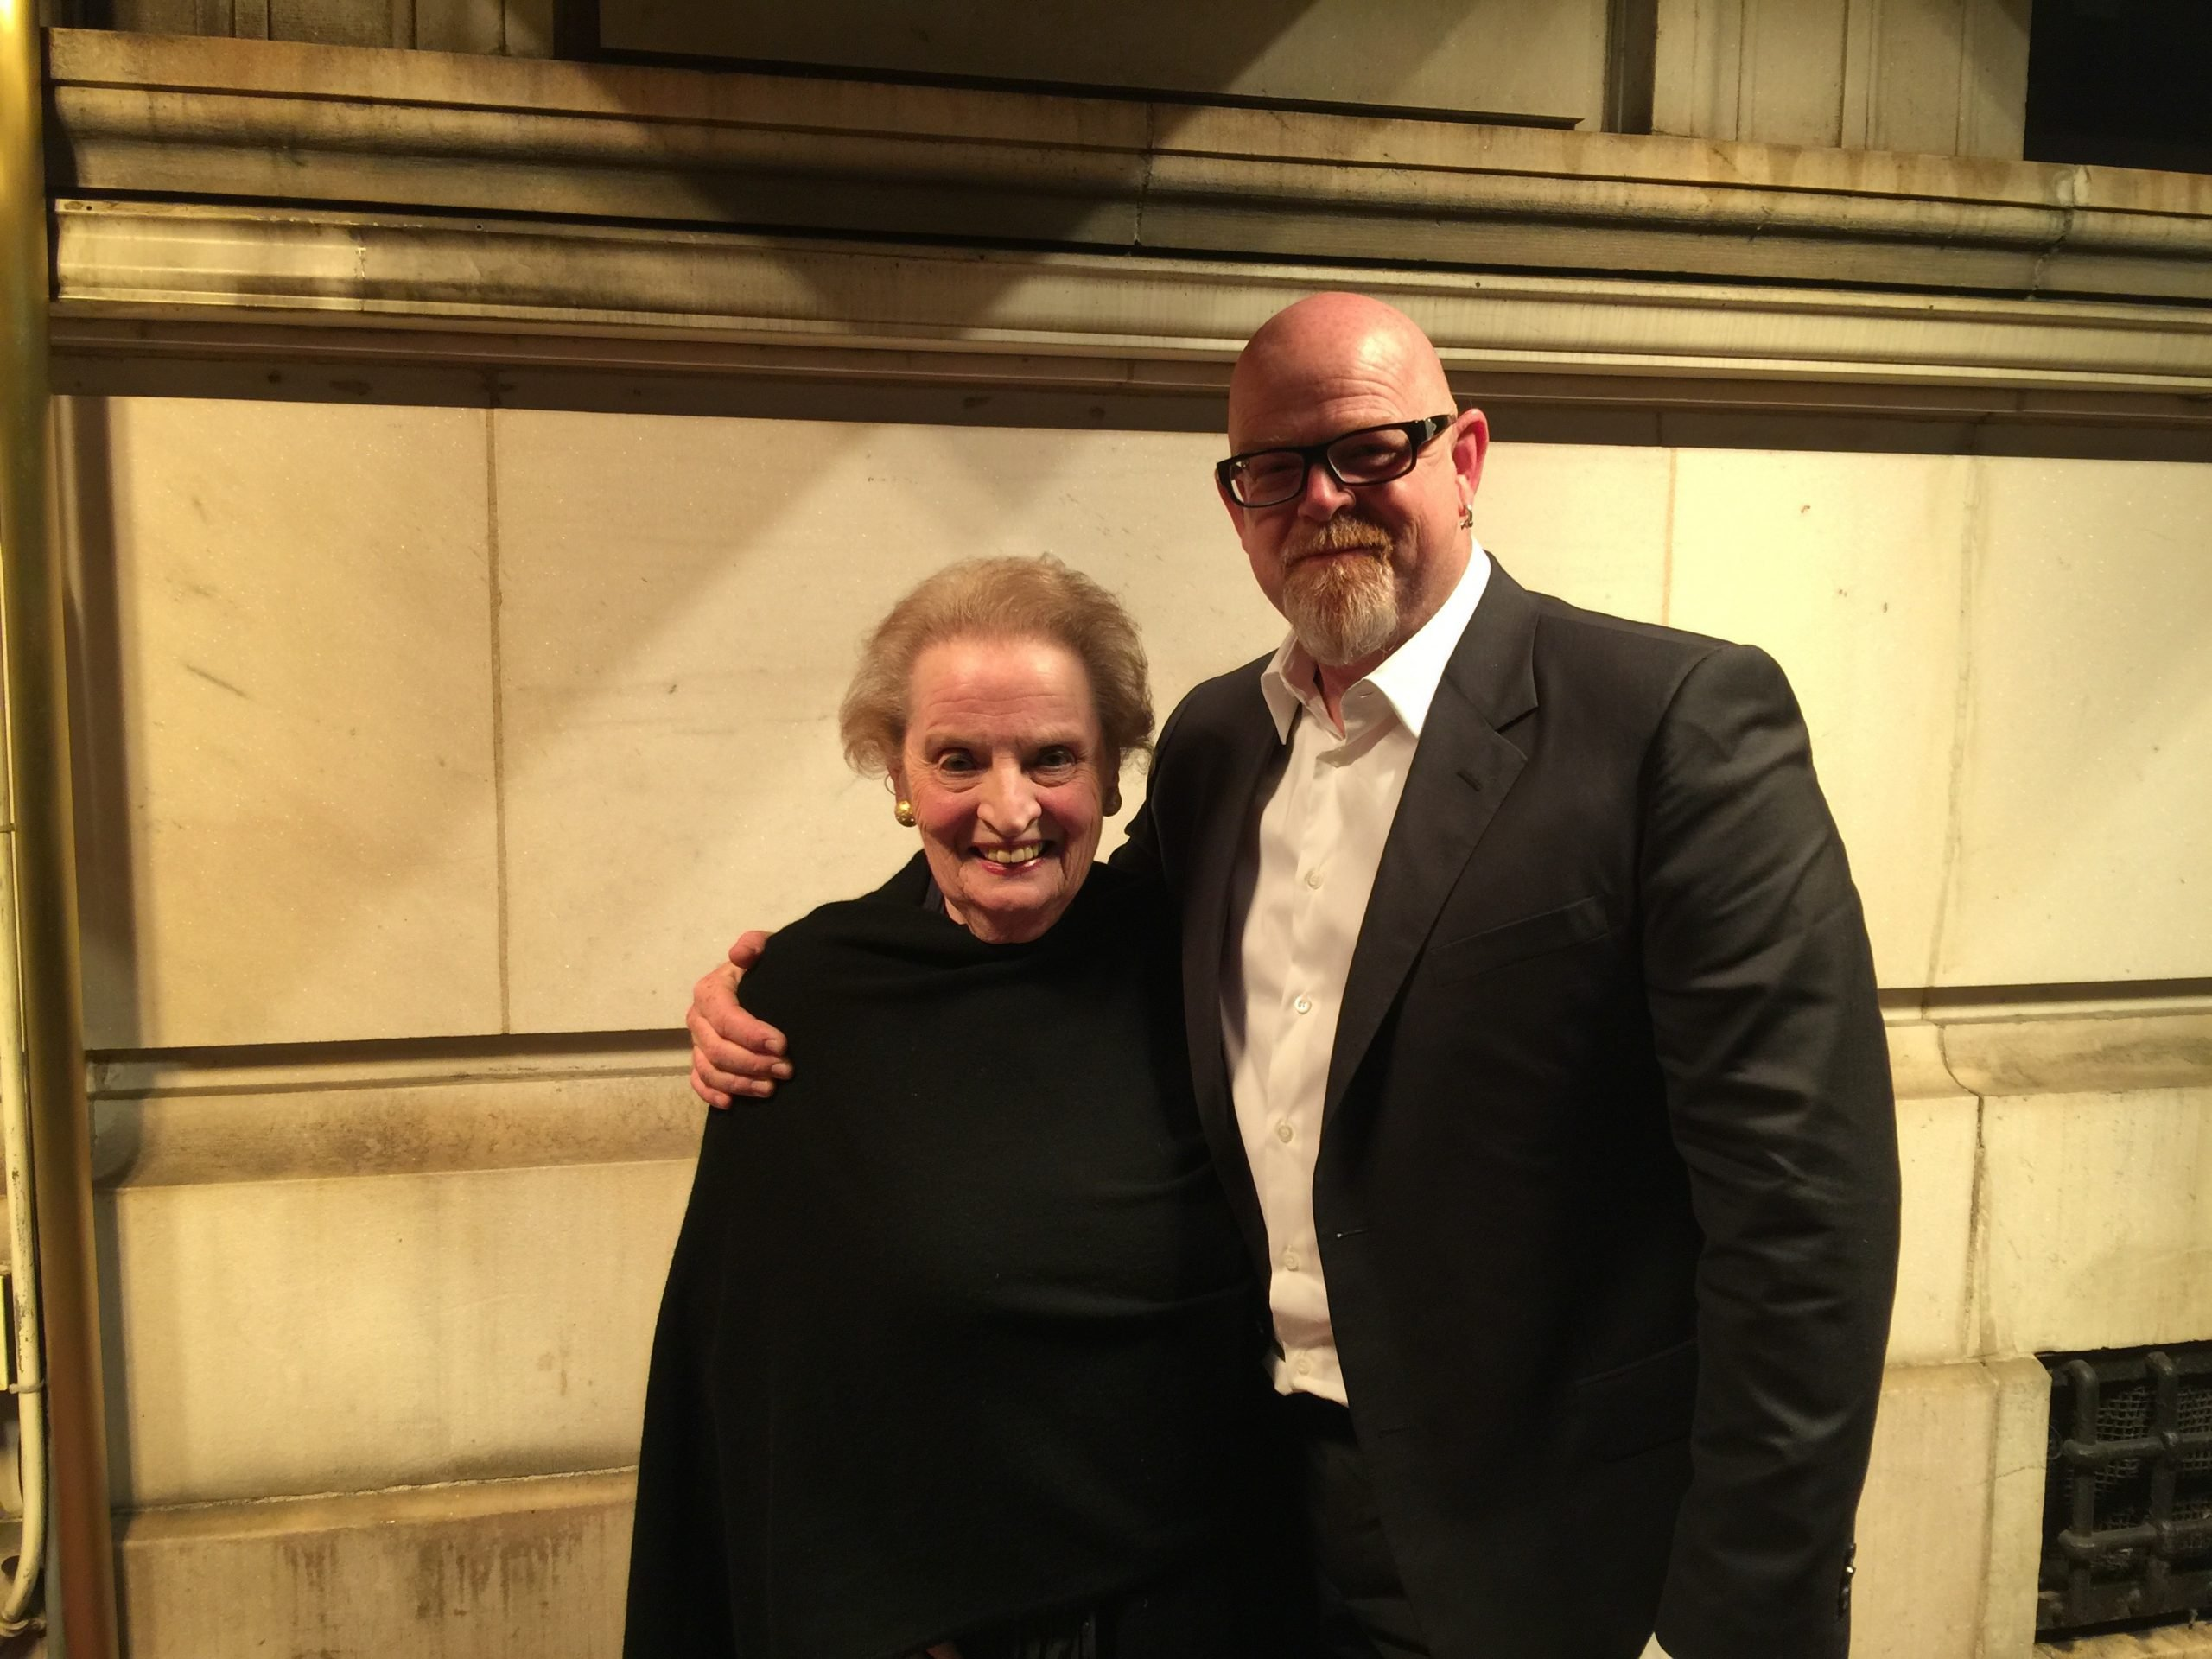 With Madeleine K. ALBRIGHT